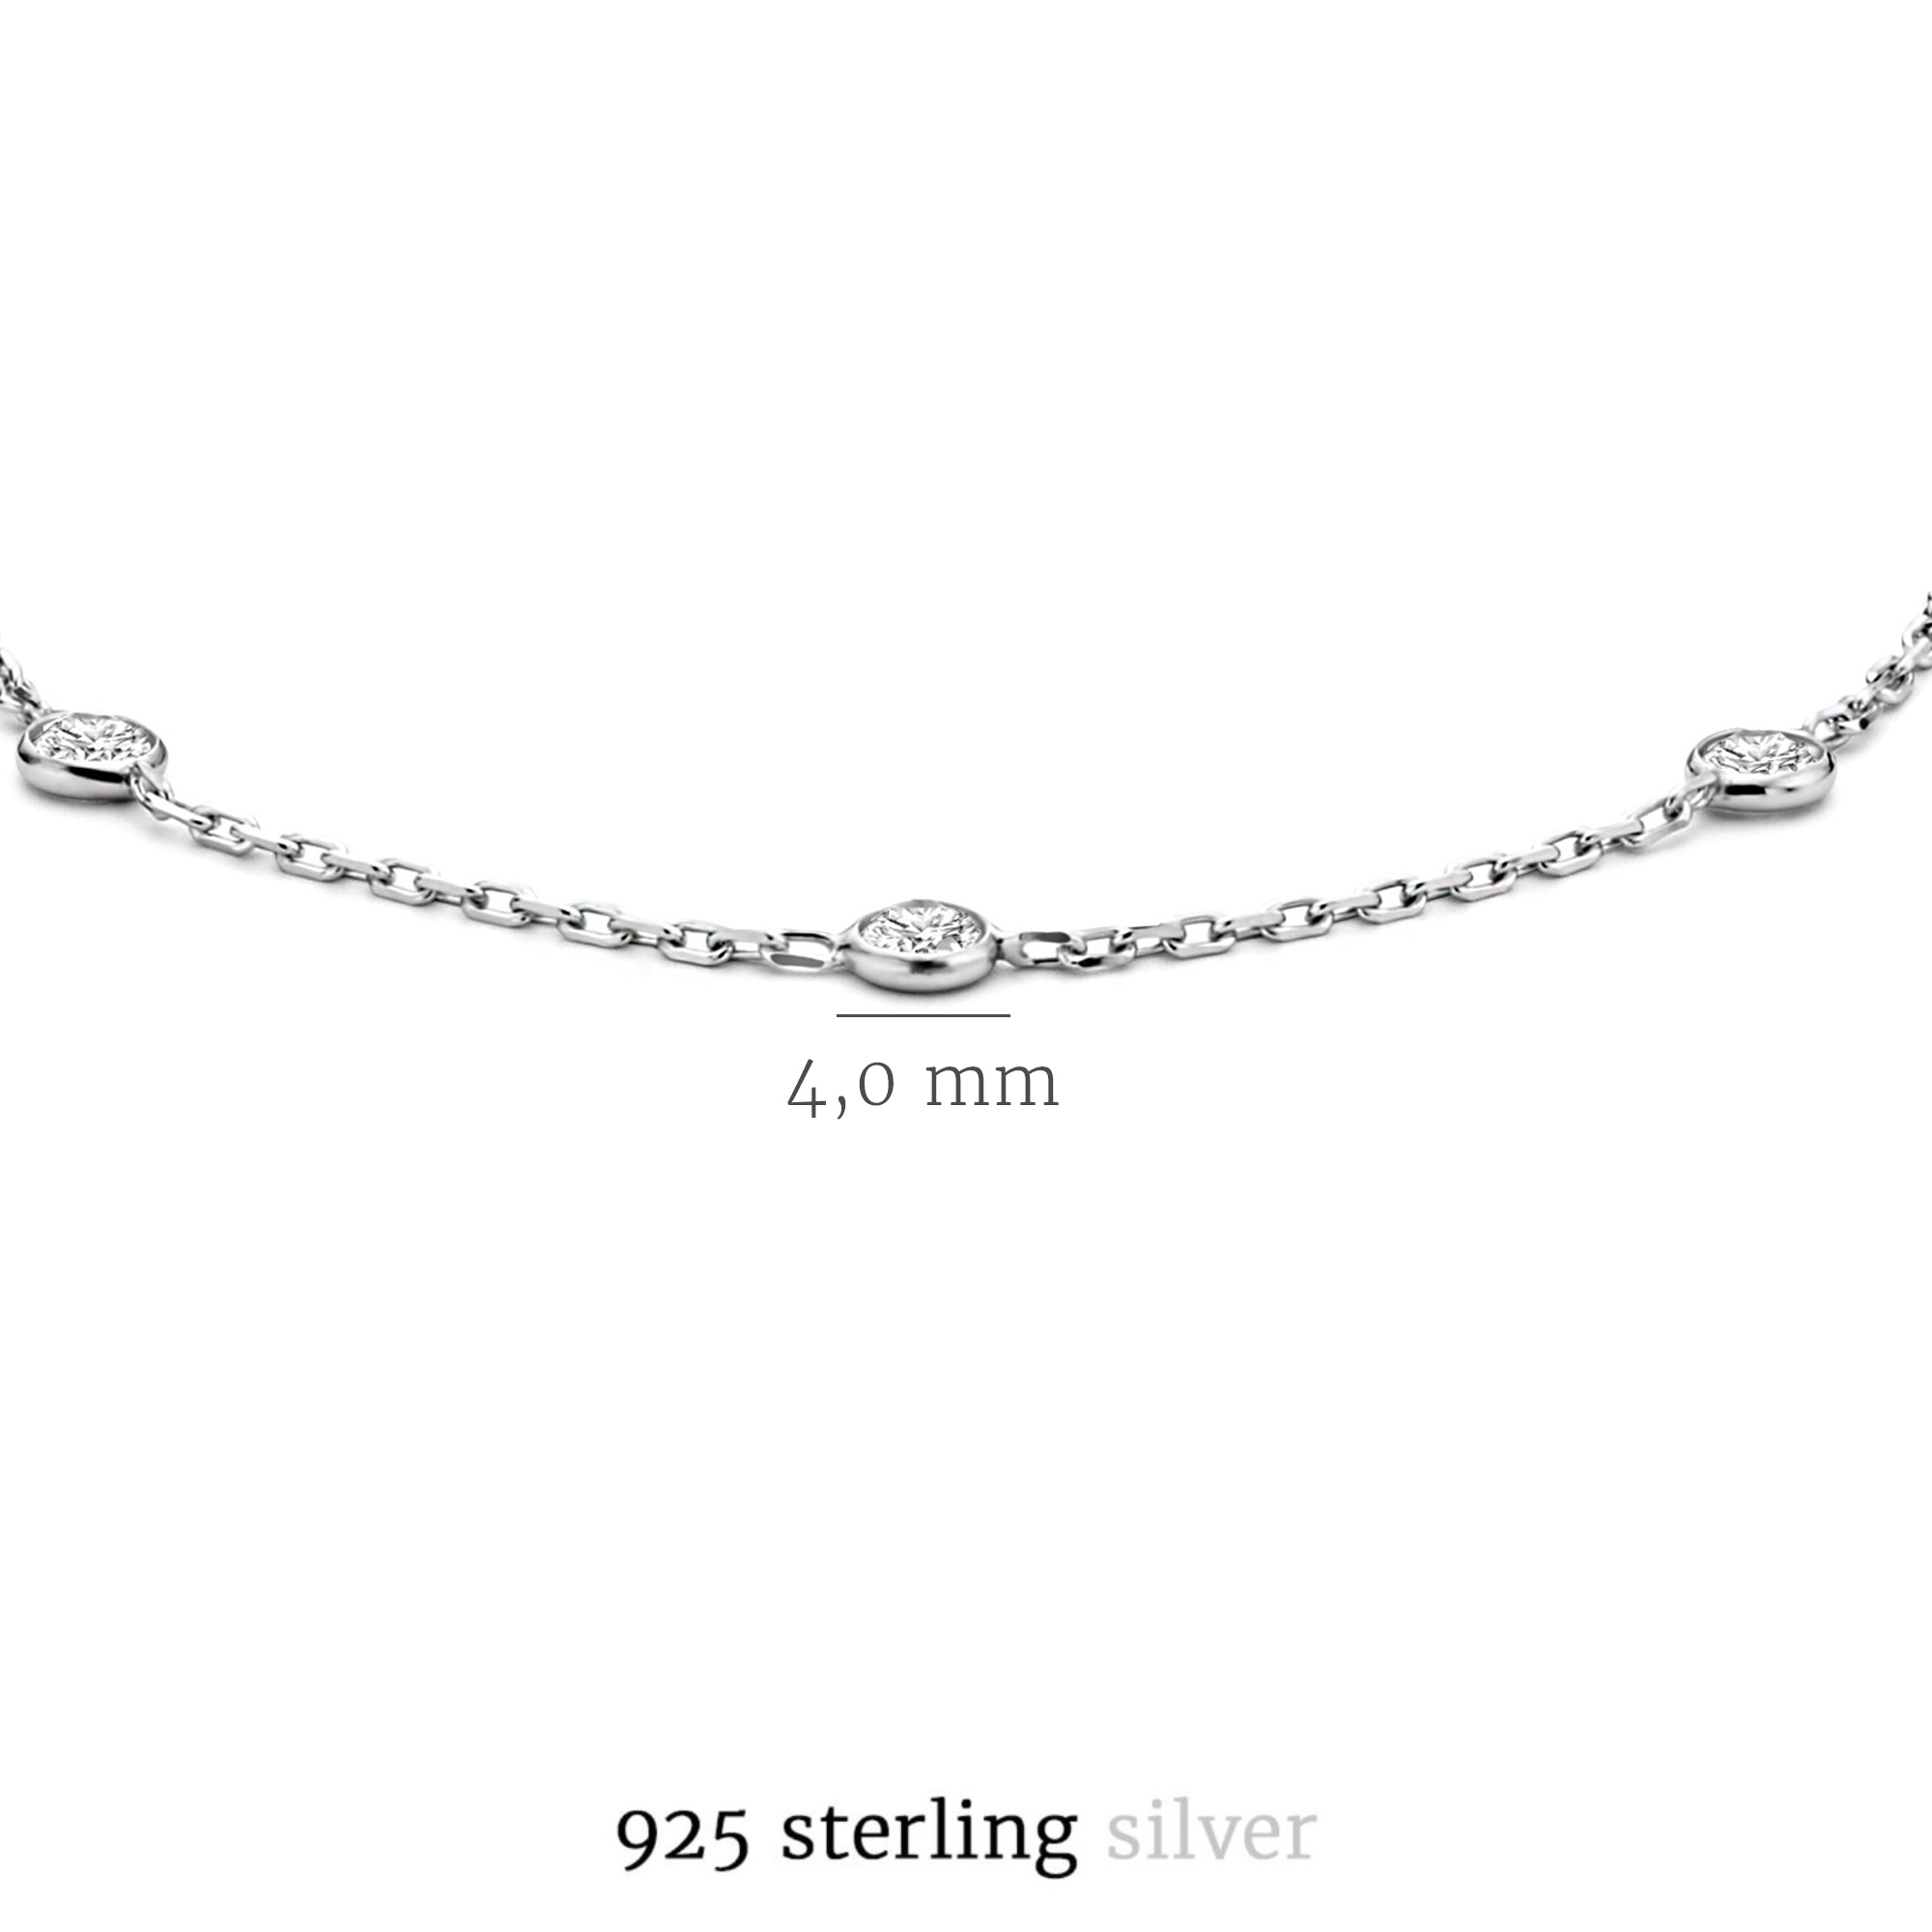 Selected Jewels Mila Elodie armband i 925 sterling silver